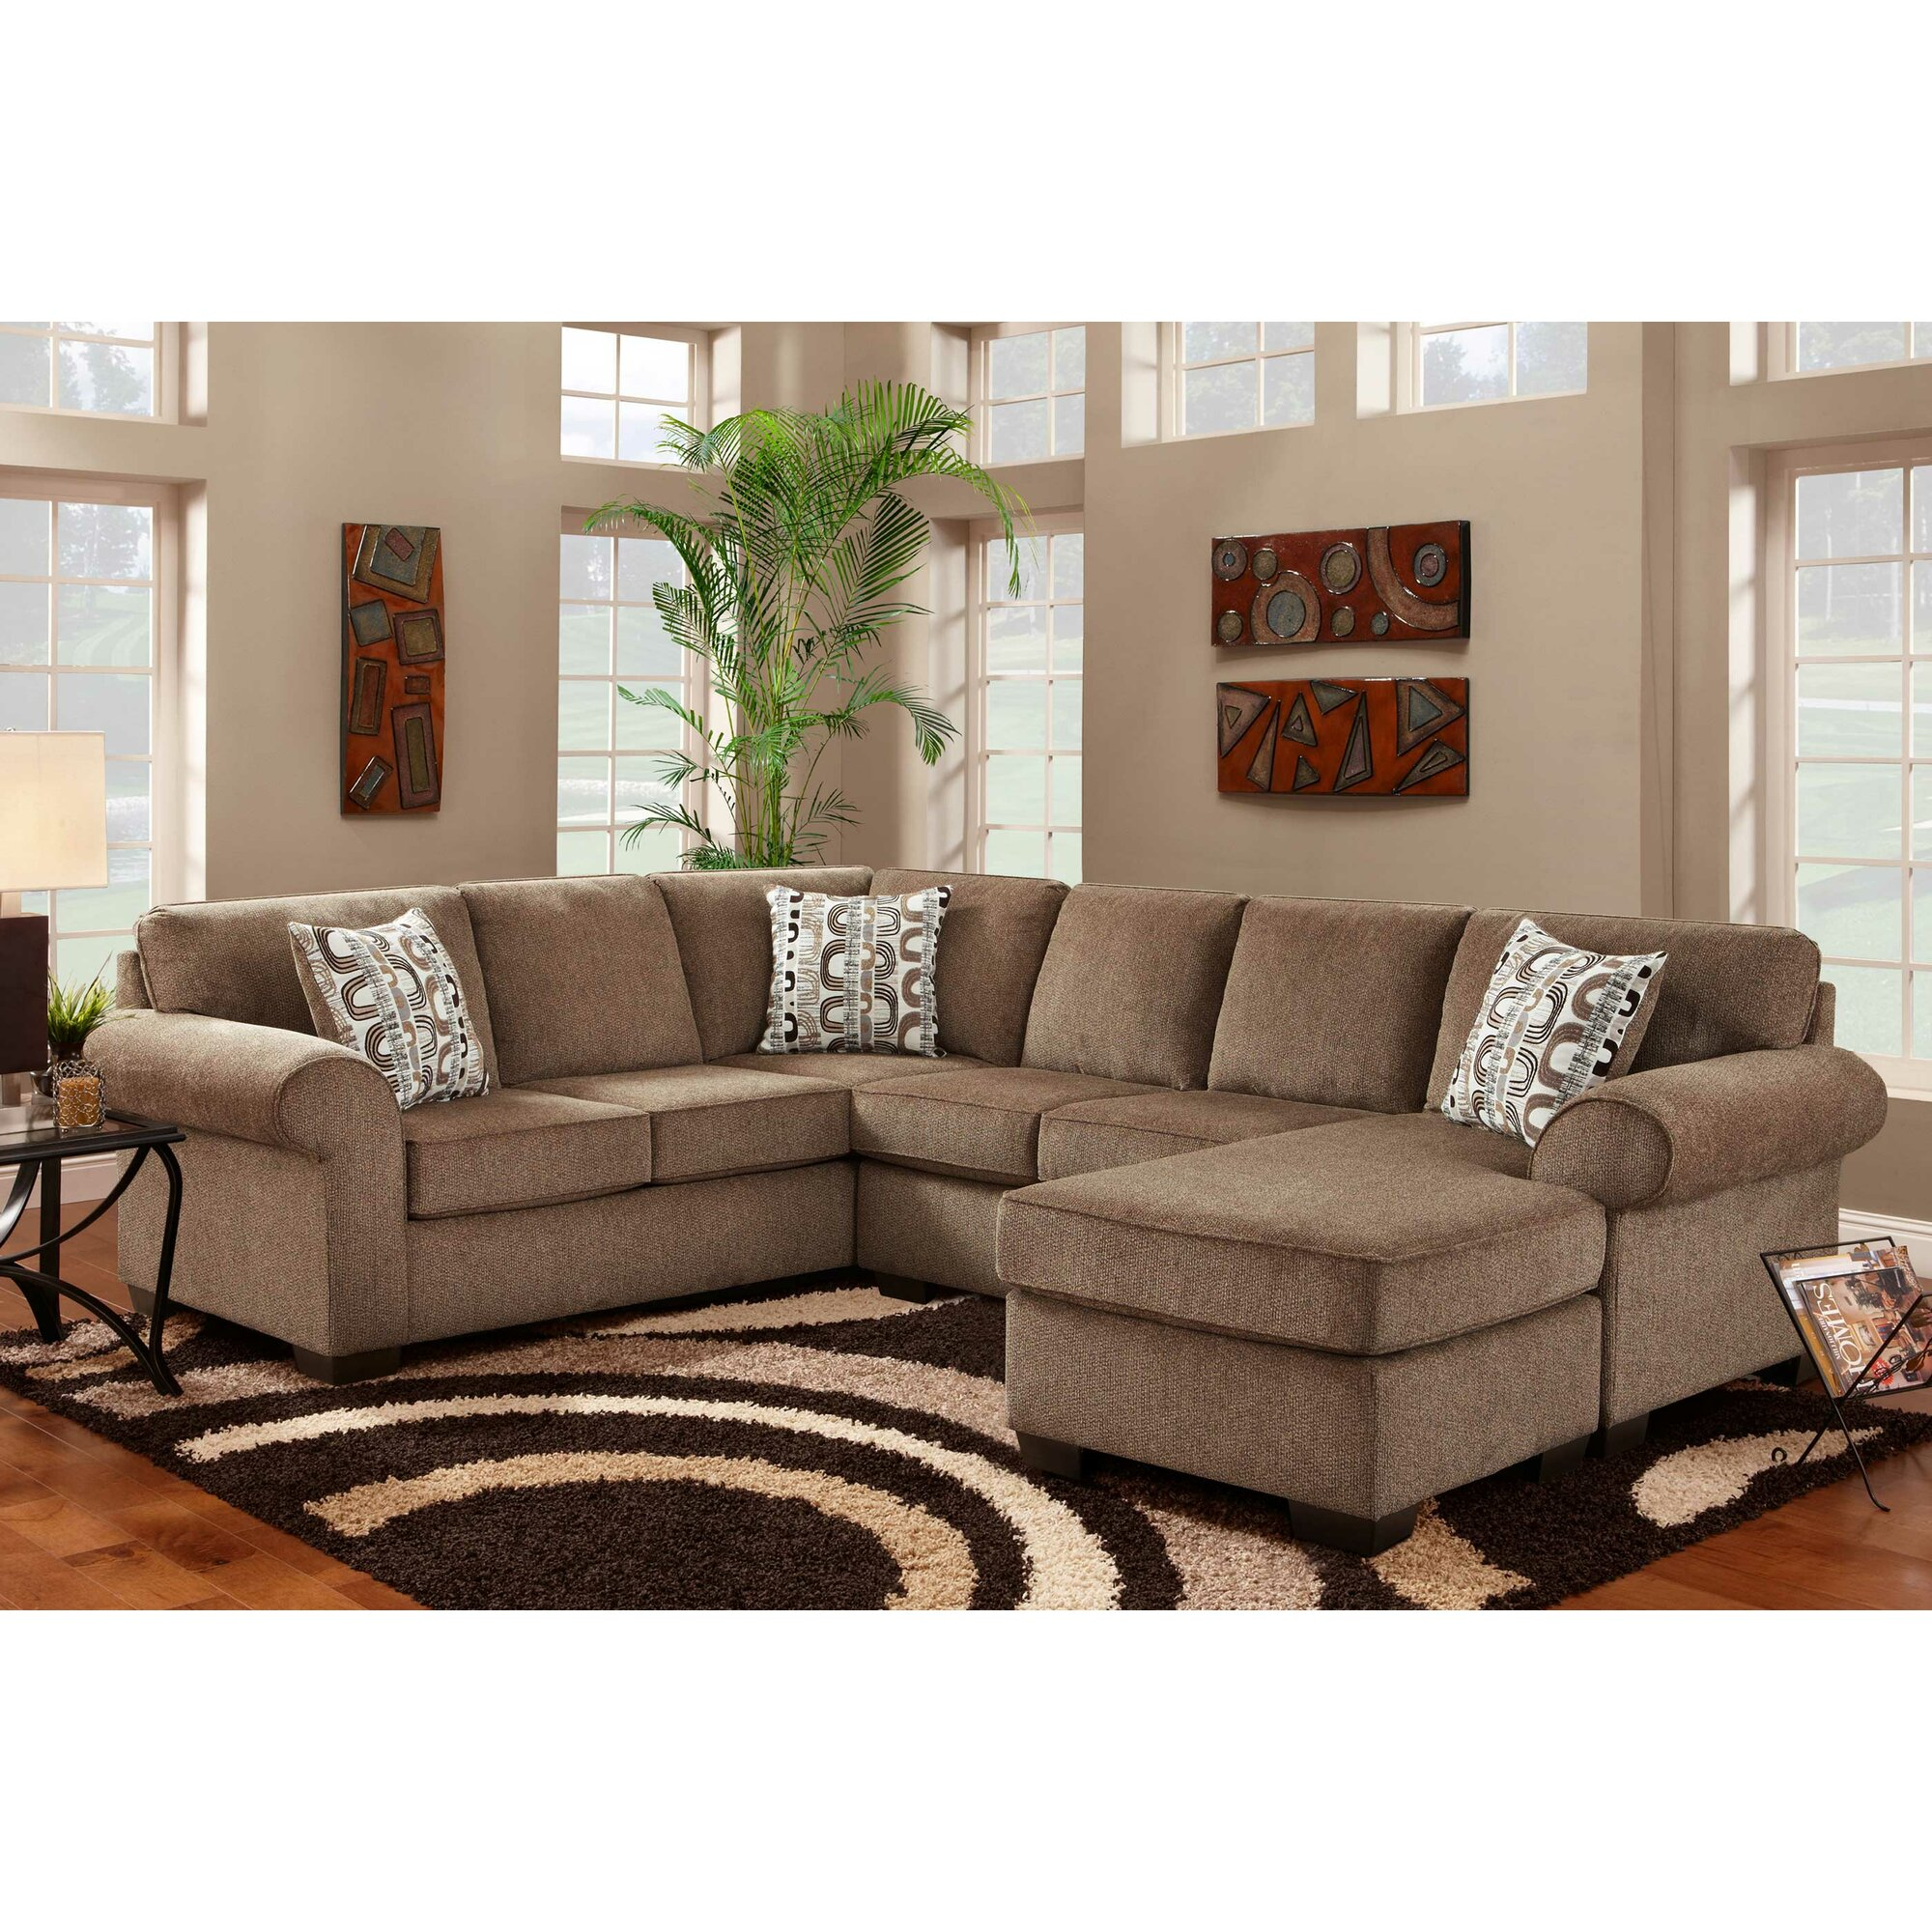 Chelsea Home Furniture Roosevelt Reversible Chaise Sectional WCF3283